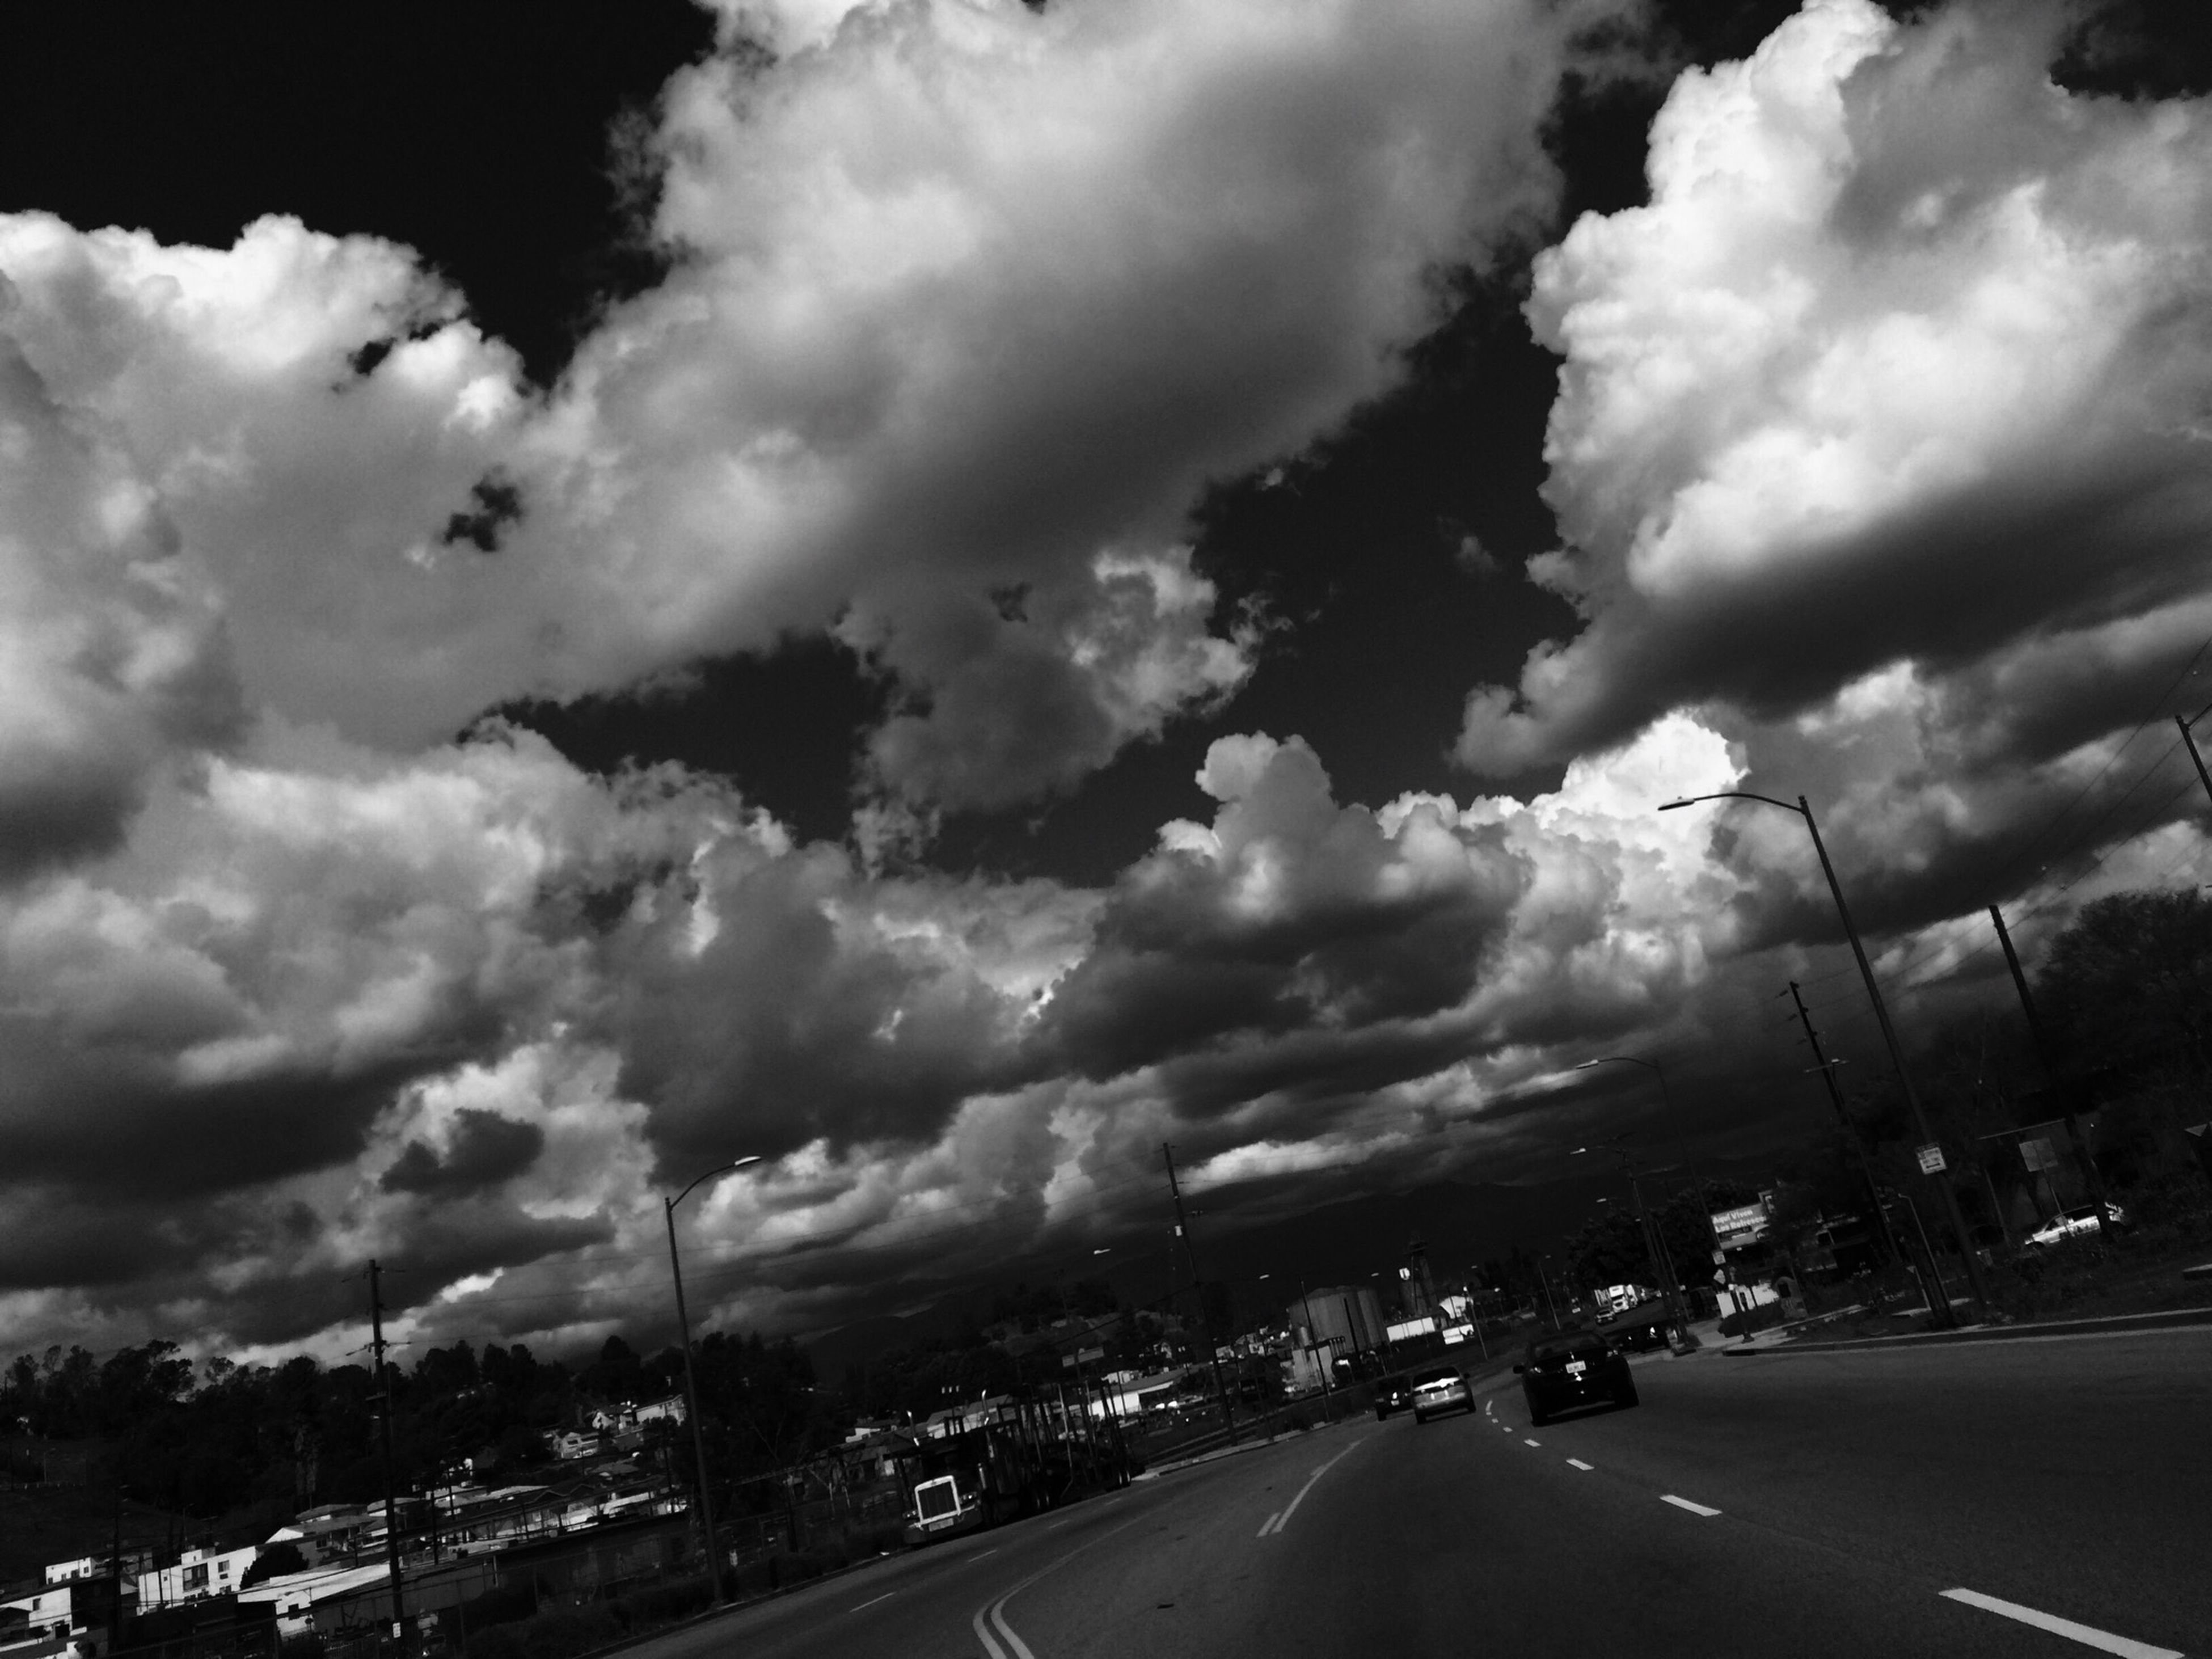 sky, transportation, cloud - sky, road, cloudy, car, cloud, the way forward, street, land vehicle, weather, road marking, overcast, mode of transport, nature, mountain, outdoors, landscape, storm cloud, tree